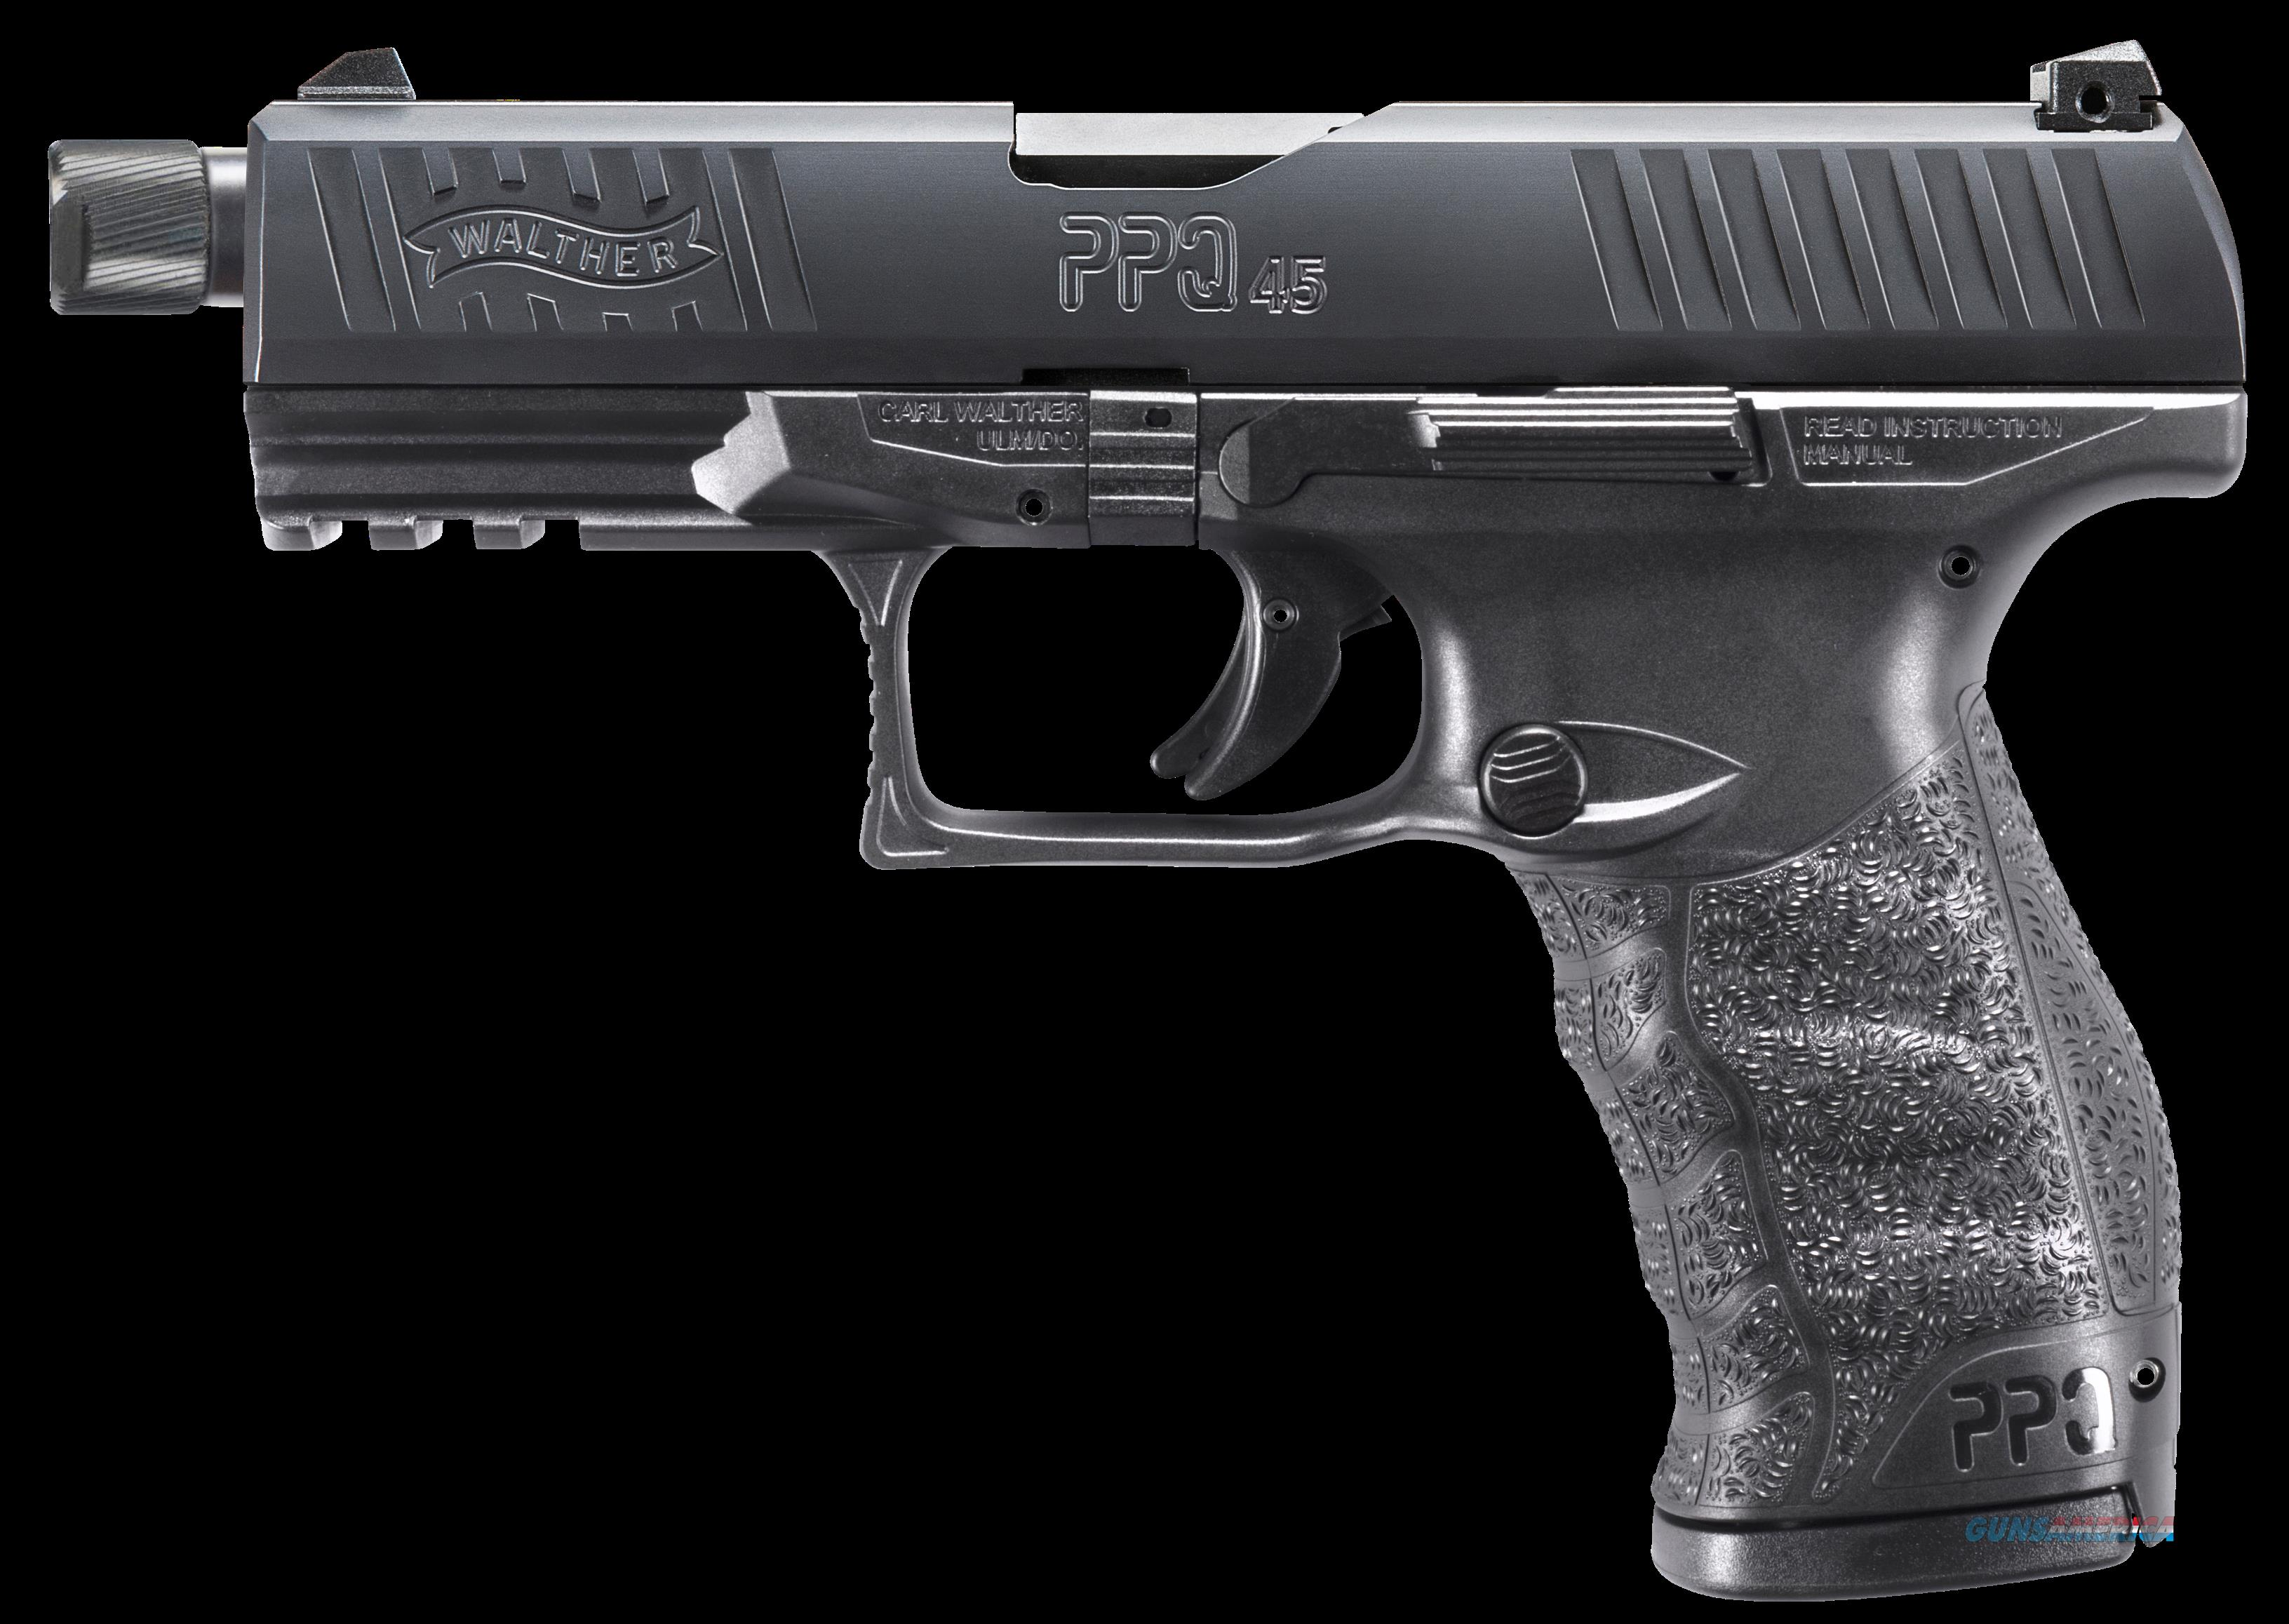 Walther Arms Ppq, Wal 2829231 Ppq M2 45acp Black 4.9in Sd 12rd  Guns > Pistols > 1911 Pistol Copies (non-Colt)